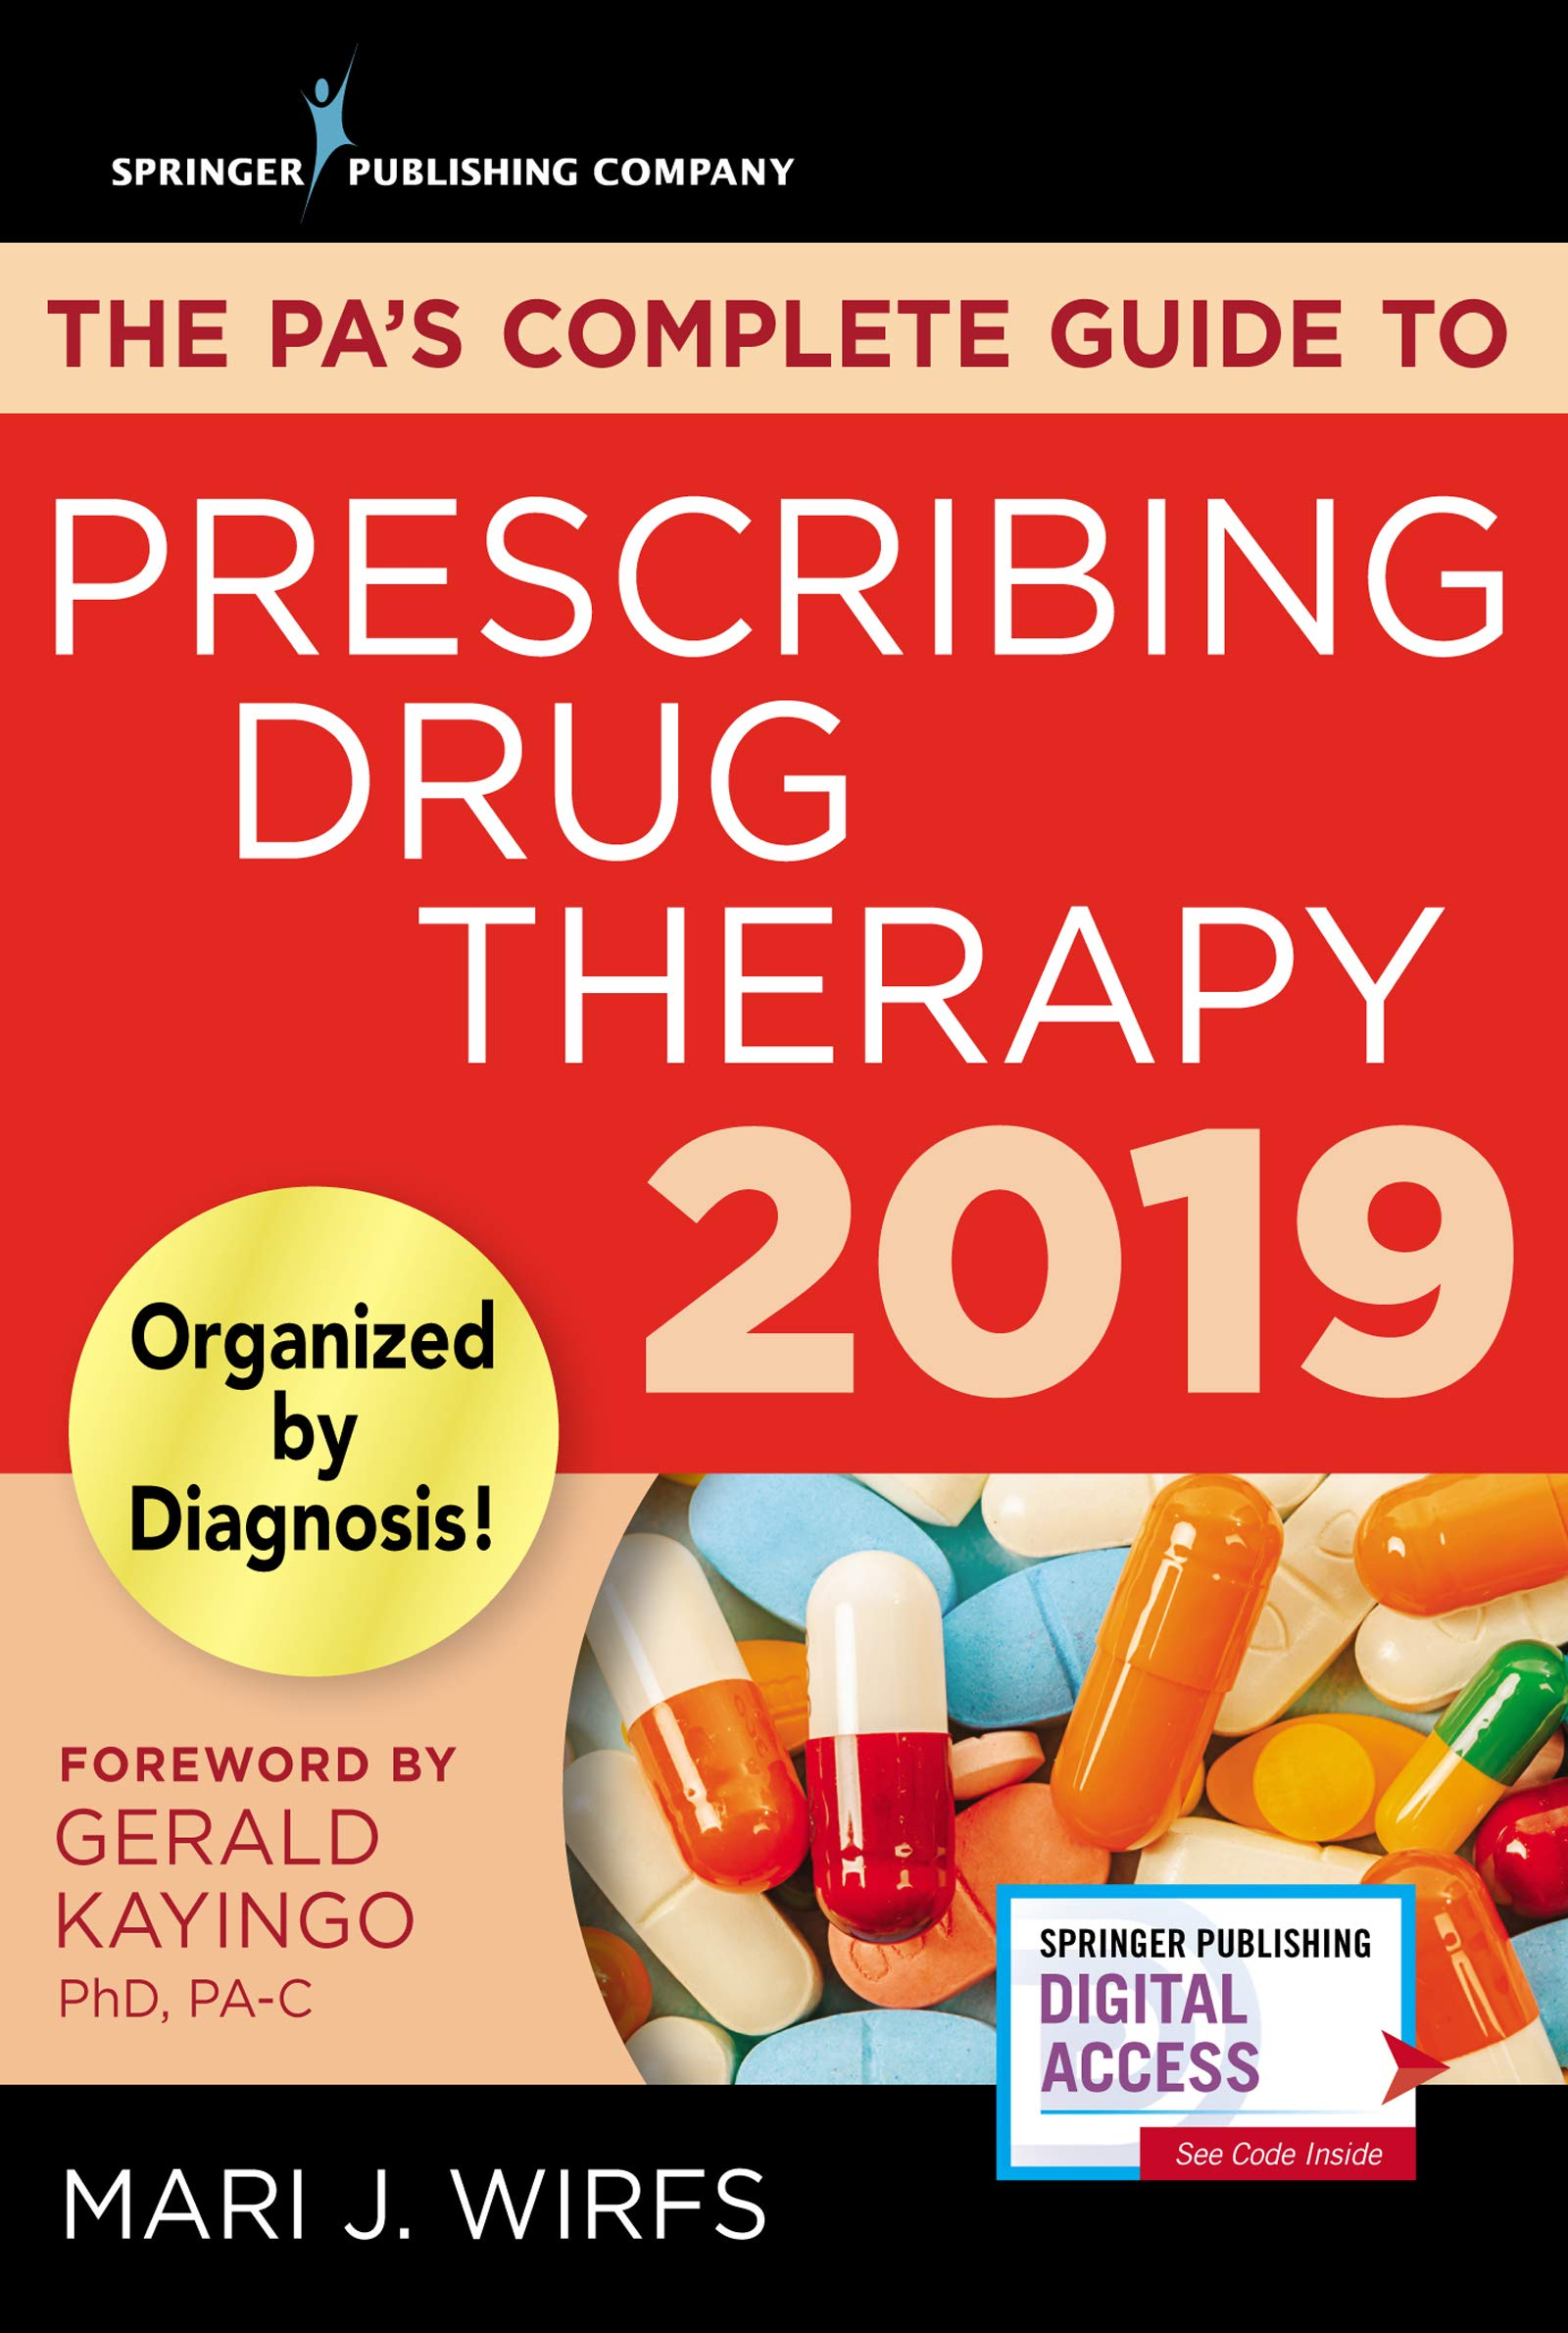 The PA's Complete Guide to Prescribing Drug Therapy - Quick Access PA Drug Guide - Updated 2019 Guide and Free App by Springer Publishing Company